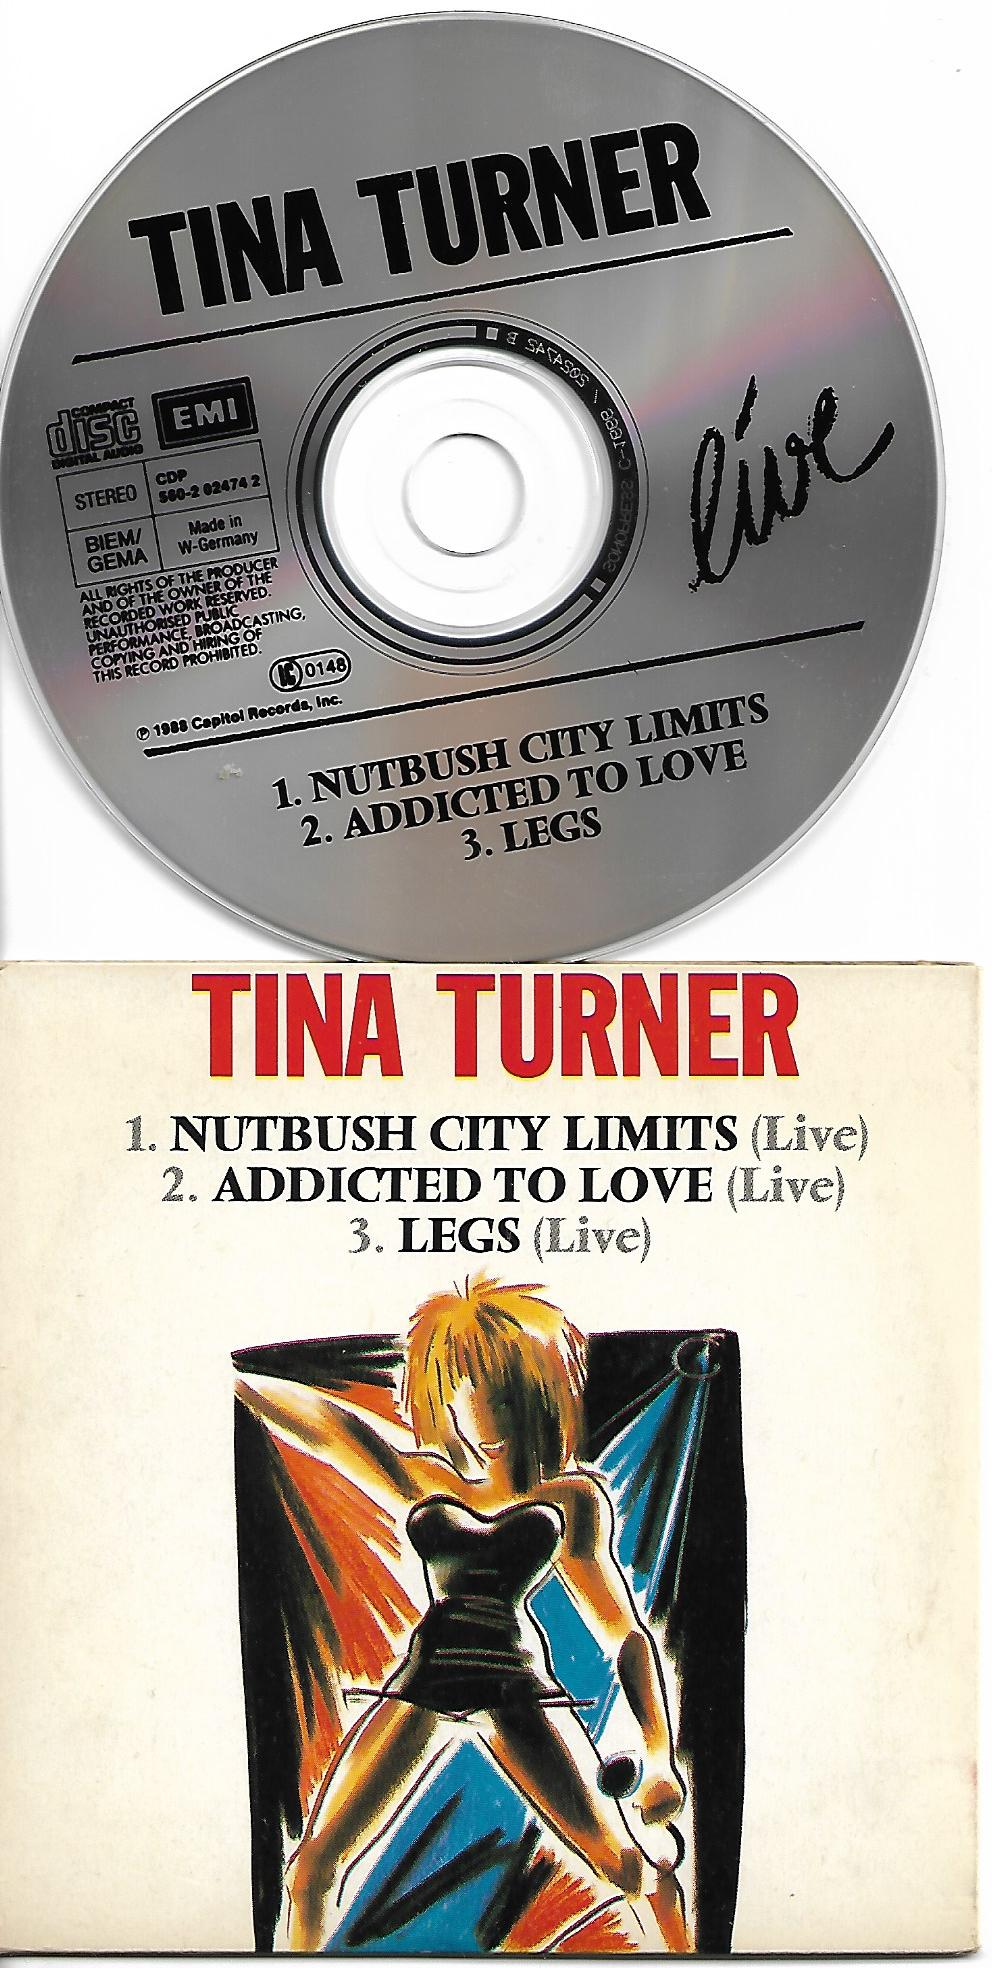 Tina TURNER - Nutbush City Limits Card Sleeve 3 Tracks